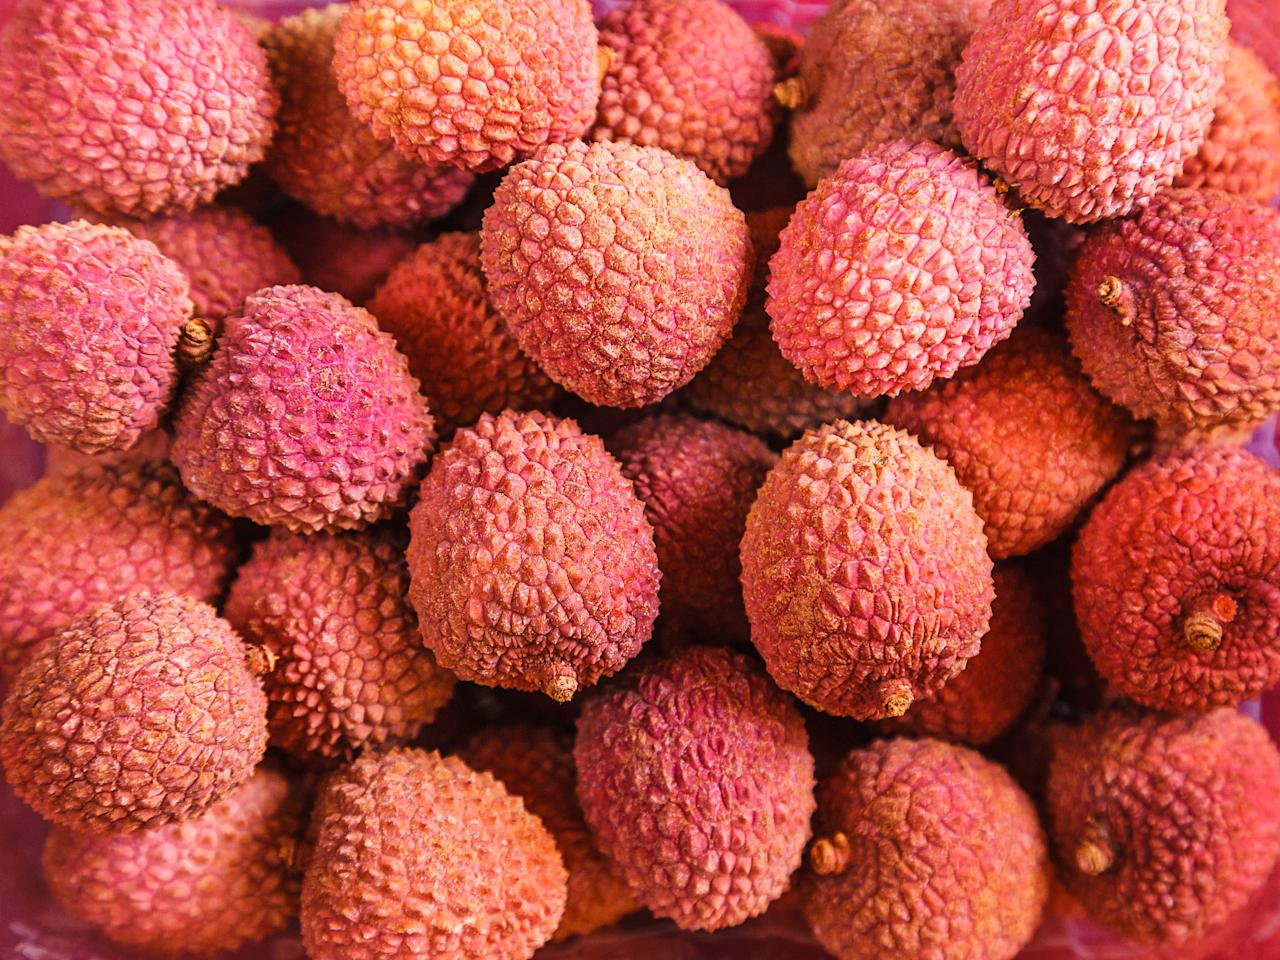 One of India's favourite summer fruits has its origins in China. However, an interesting fact about the lychee is that Indians loved the fruit so much that today we are the biggest exporter of canned lychees in the world.